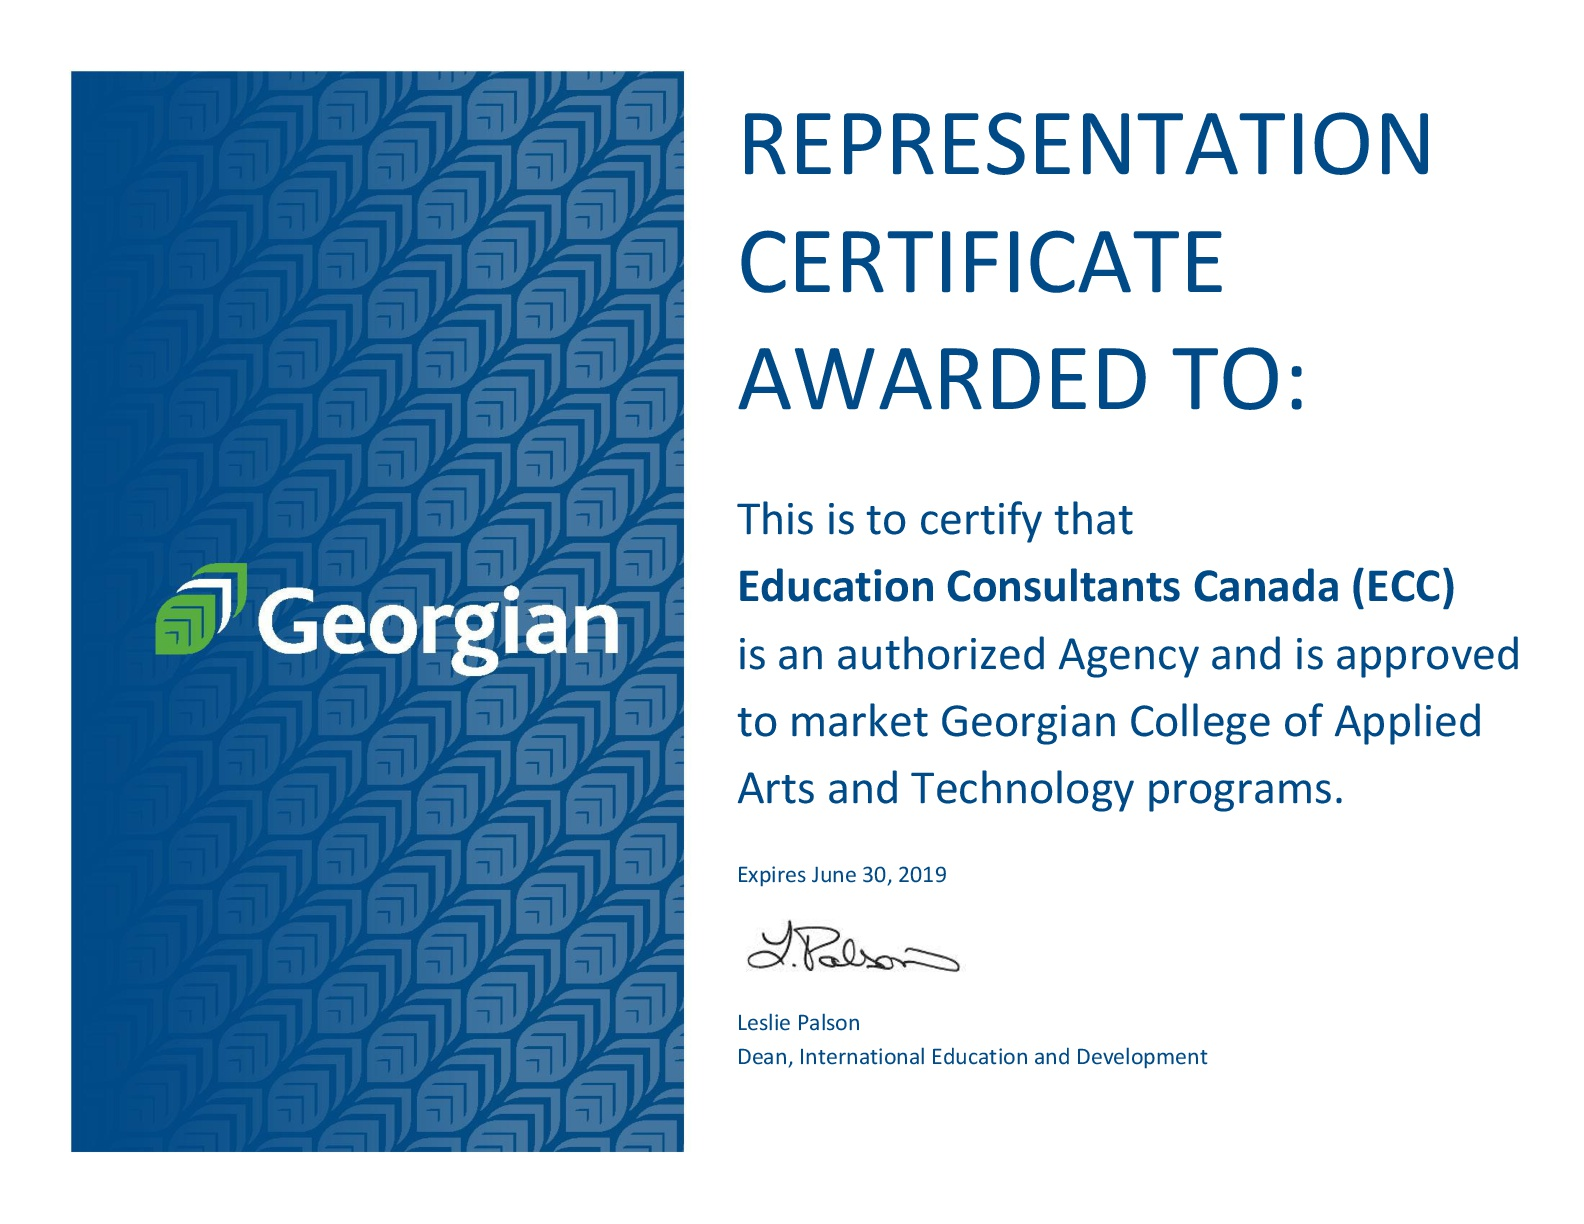 Education Consultants Canada Authorized recruiter of Georgian College for international students recruitment